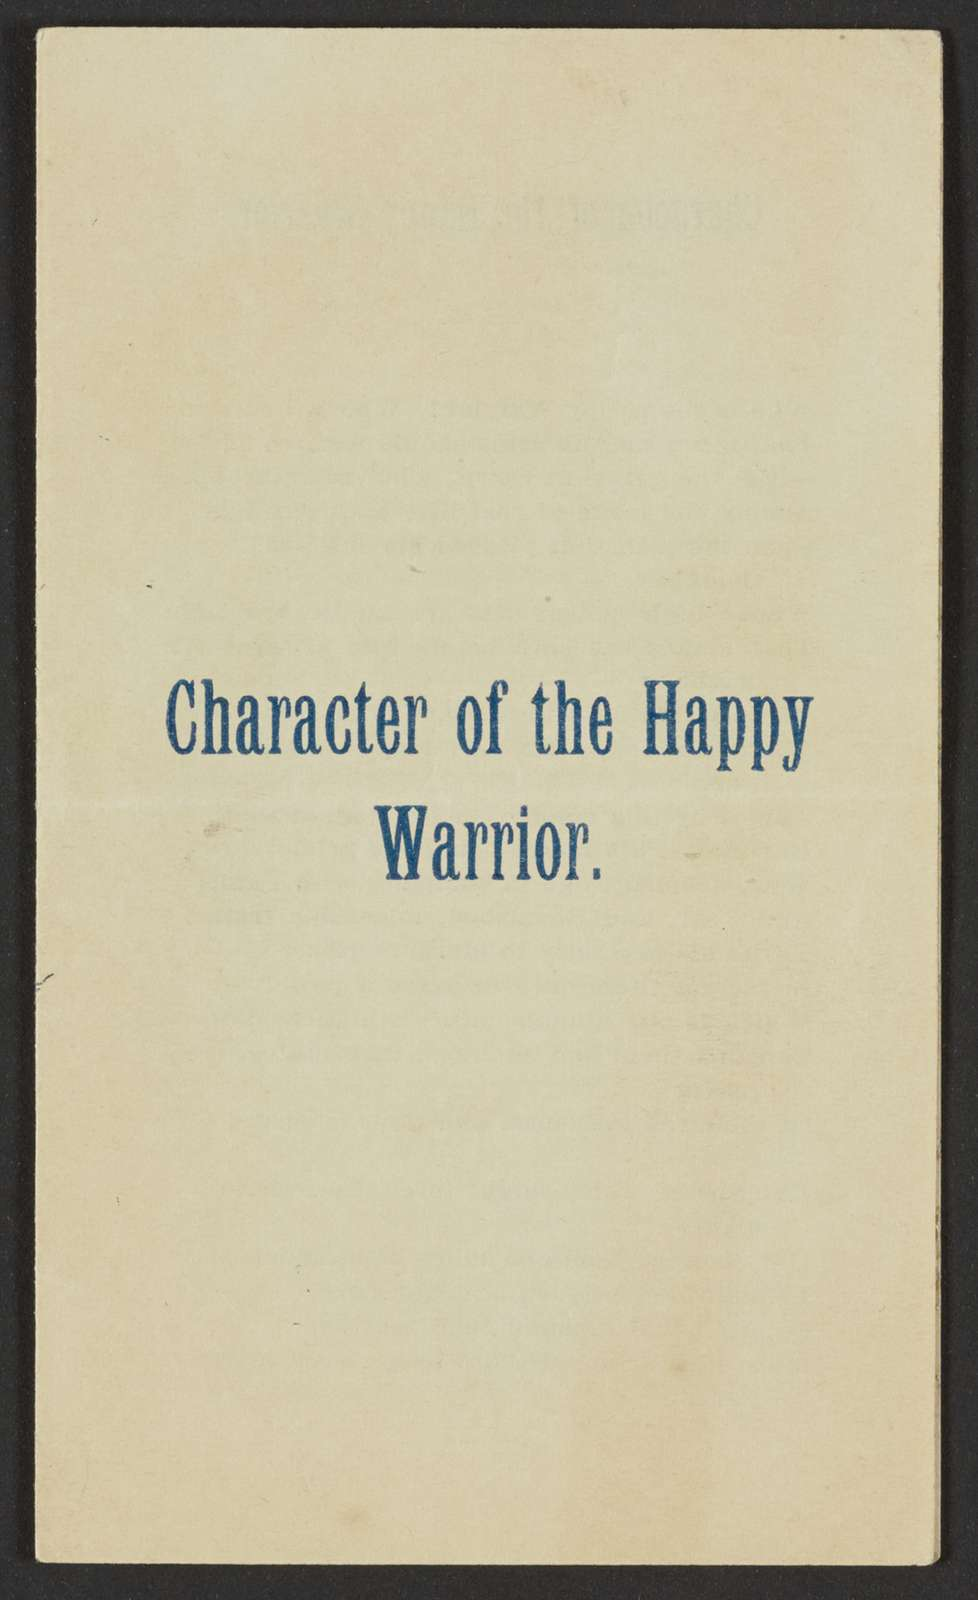 """Woodrow Wilson Papers: Series 20: Additions, 1881-1957; 1978-1980 Addition; Miscellany, 1881-1948, undated; Printed matter; """"Character of the Happy Warrior,"""" poem, undated"""